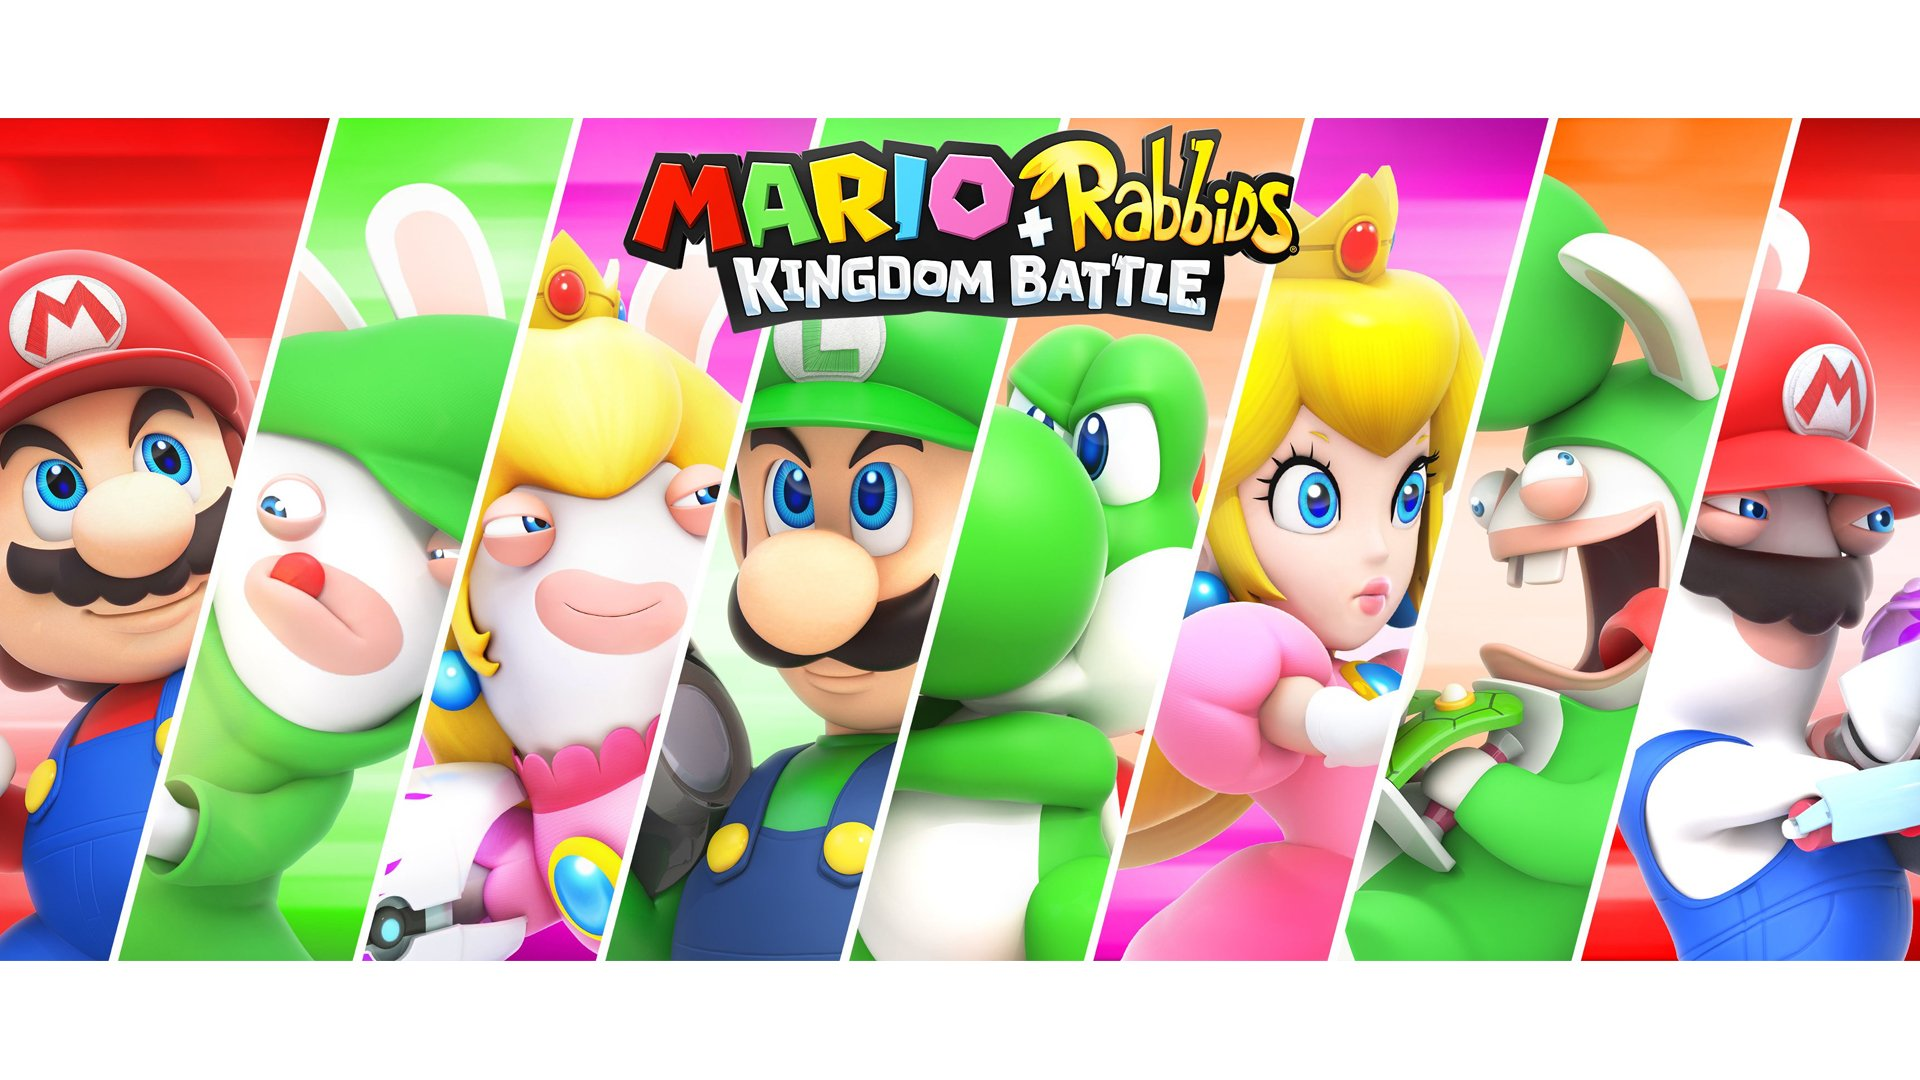 6 mario + rabbids kingdom battle hd wallpapers | background images